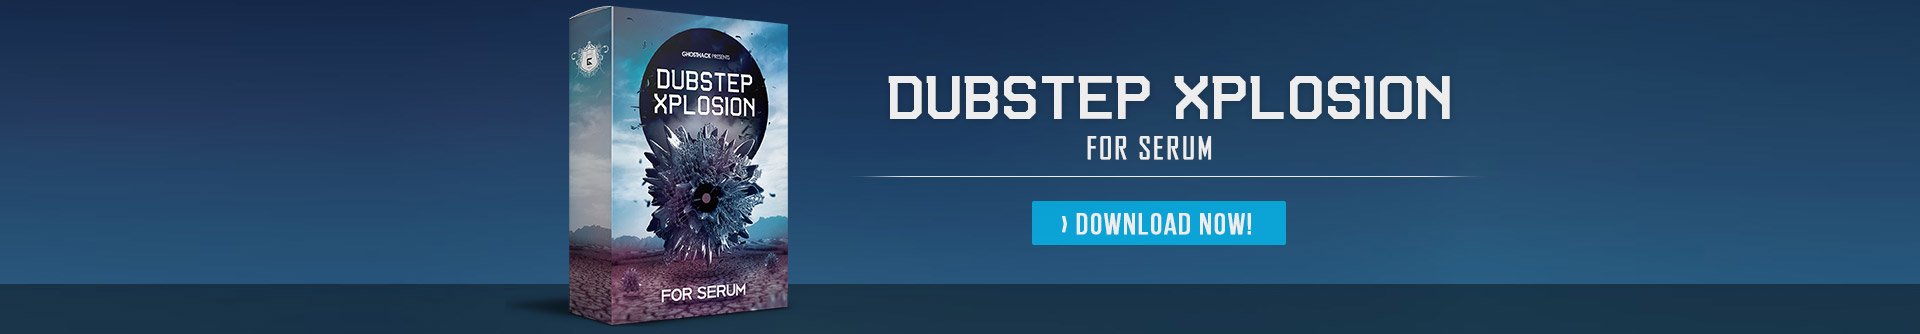 70 Dubstep Presets for Serum